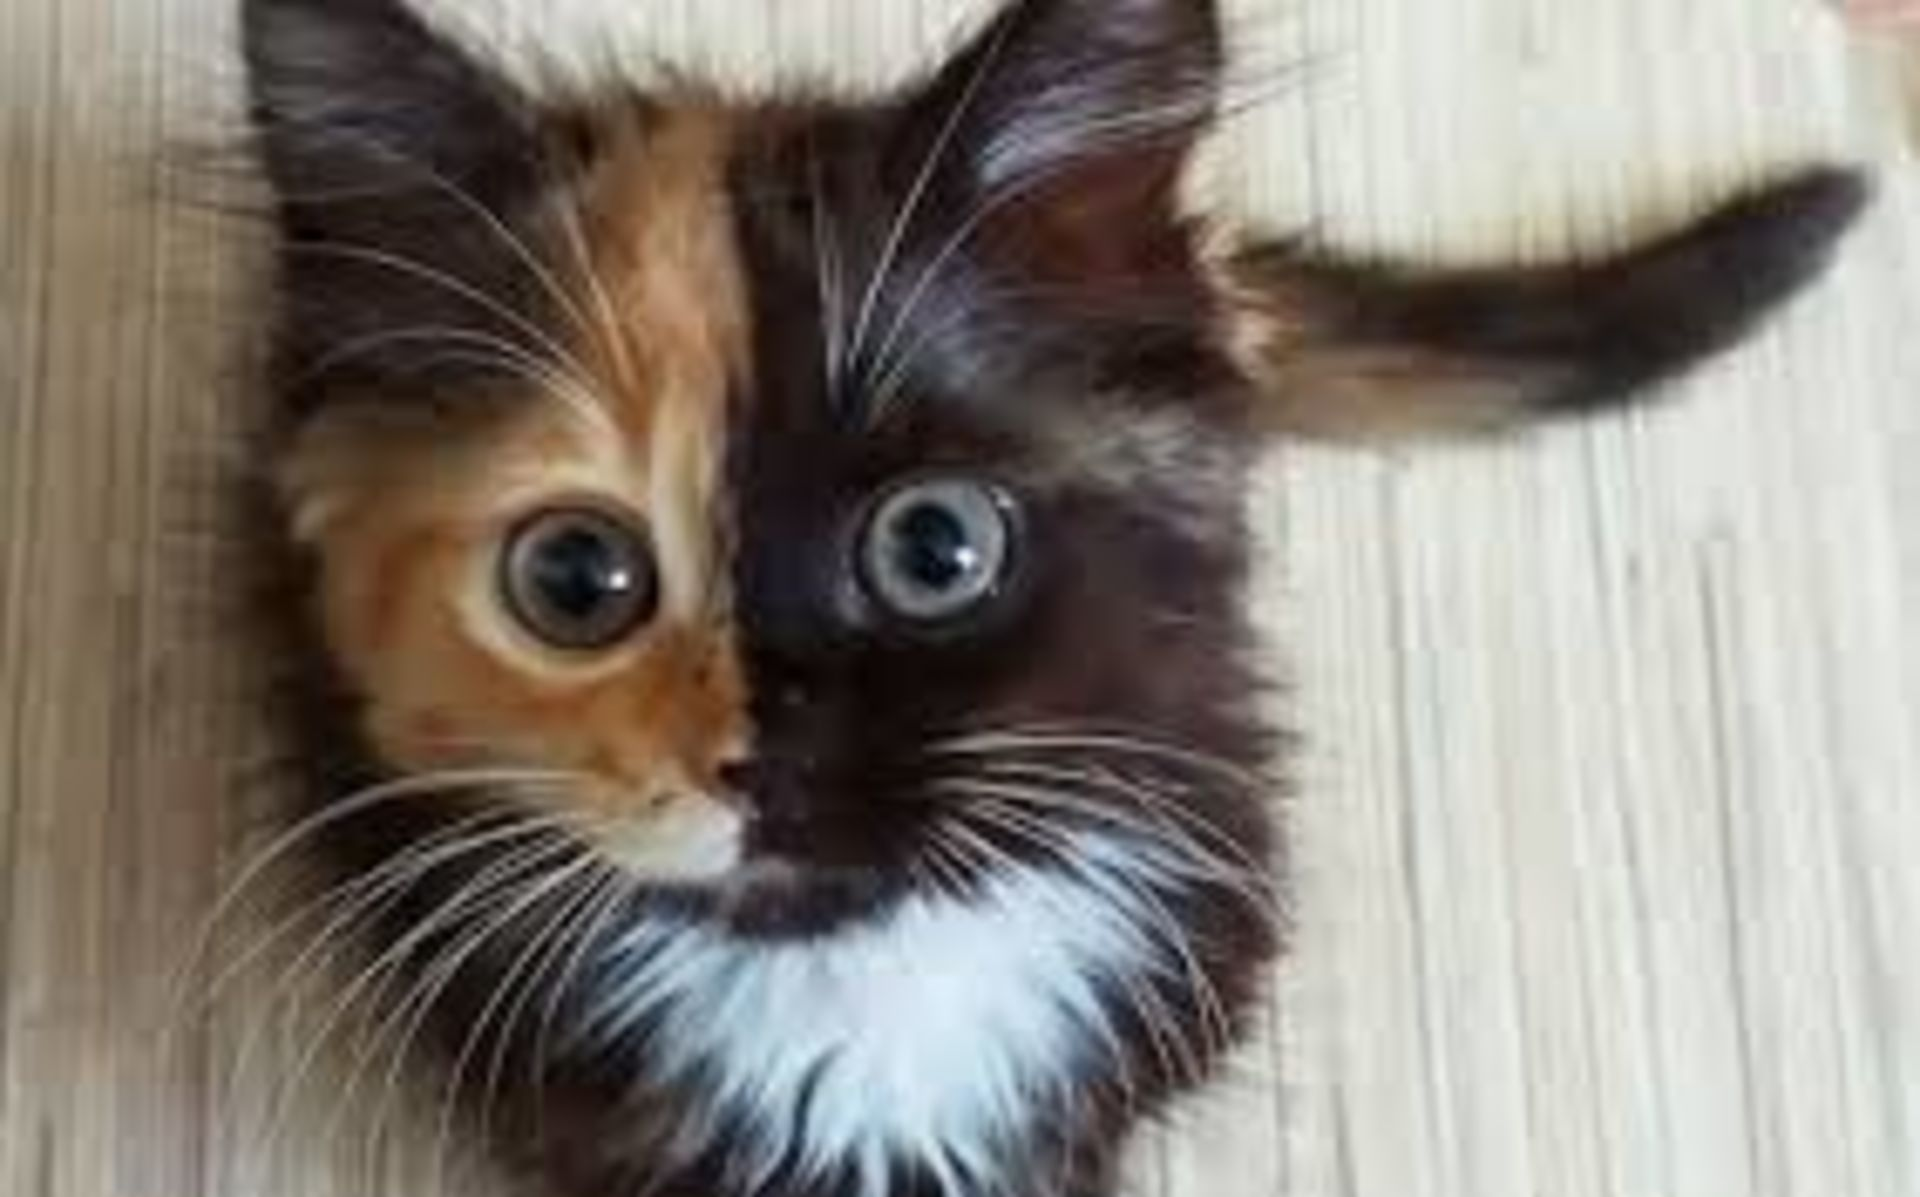 Louisville's first cat cafe opens